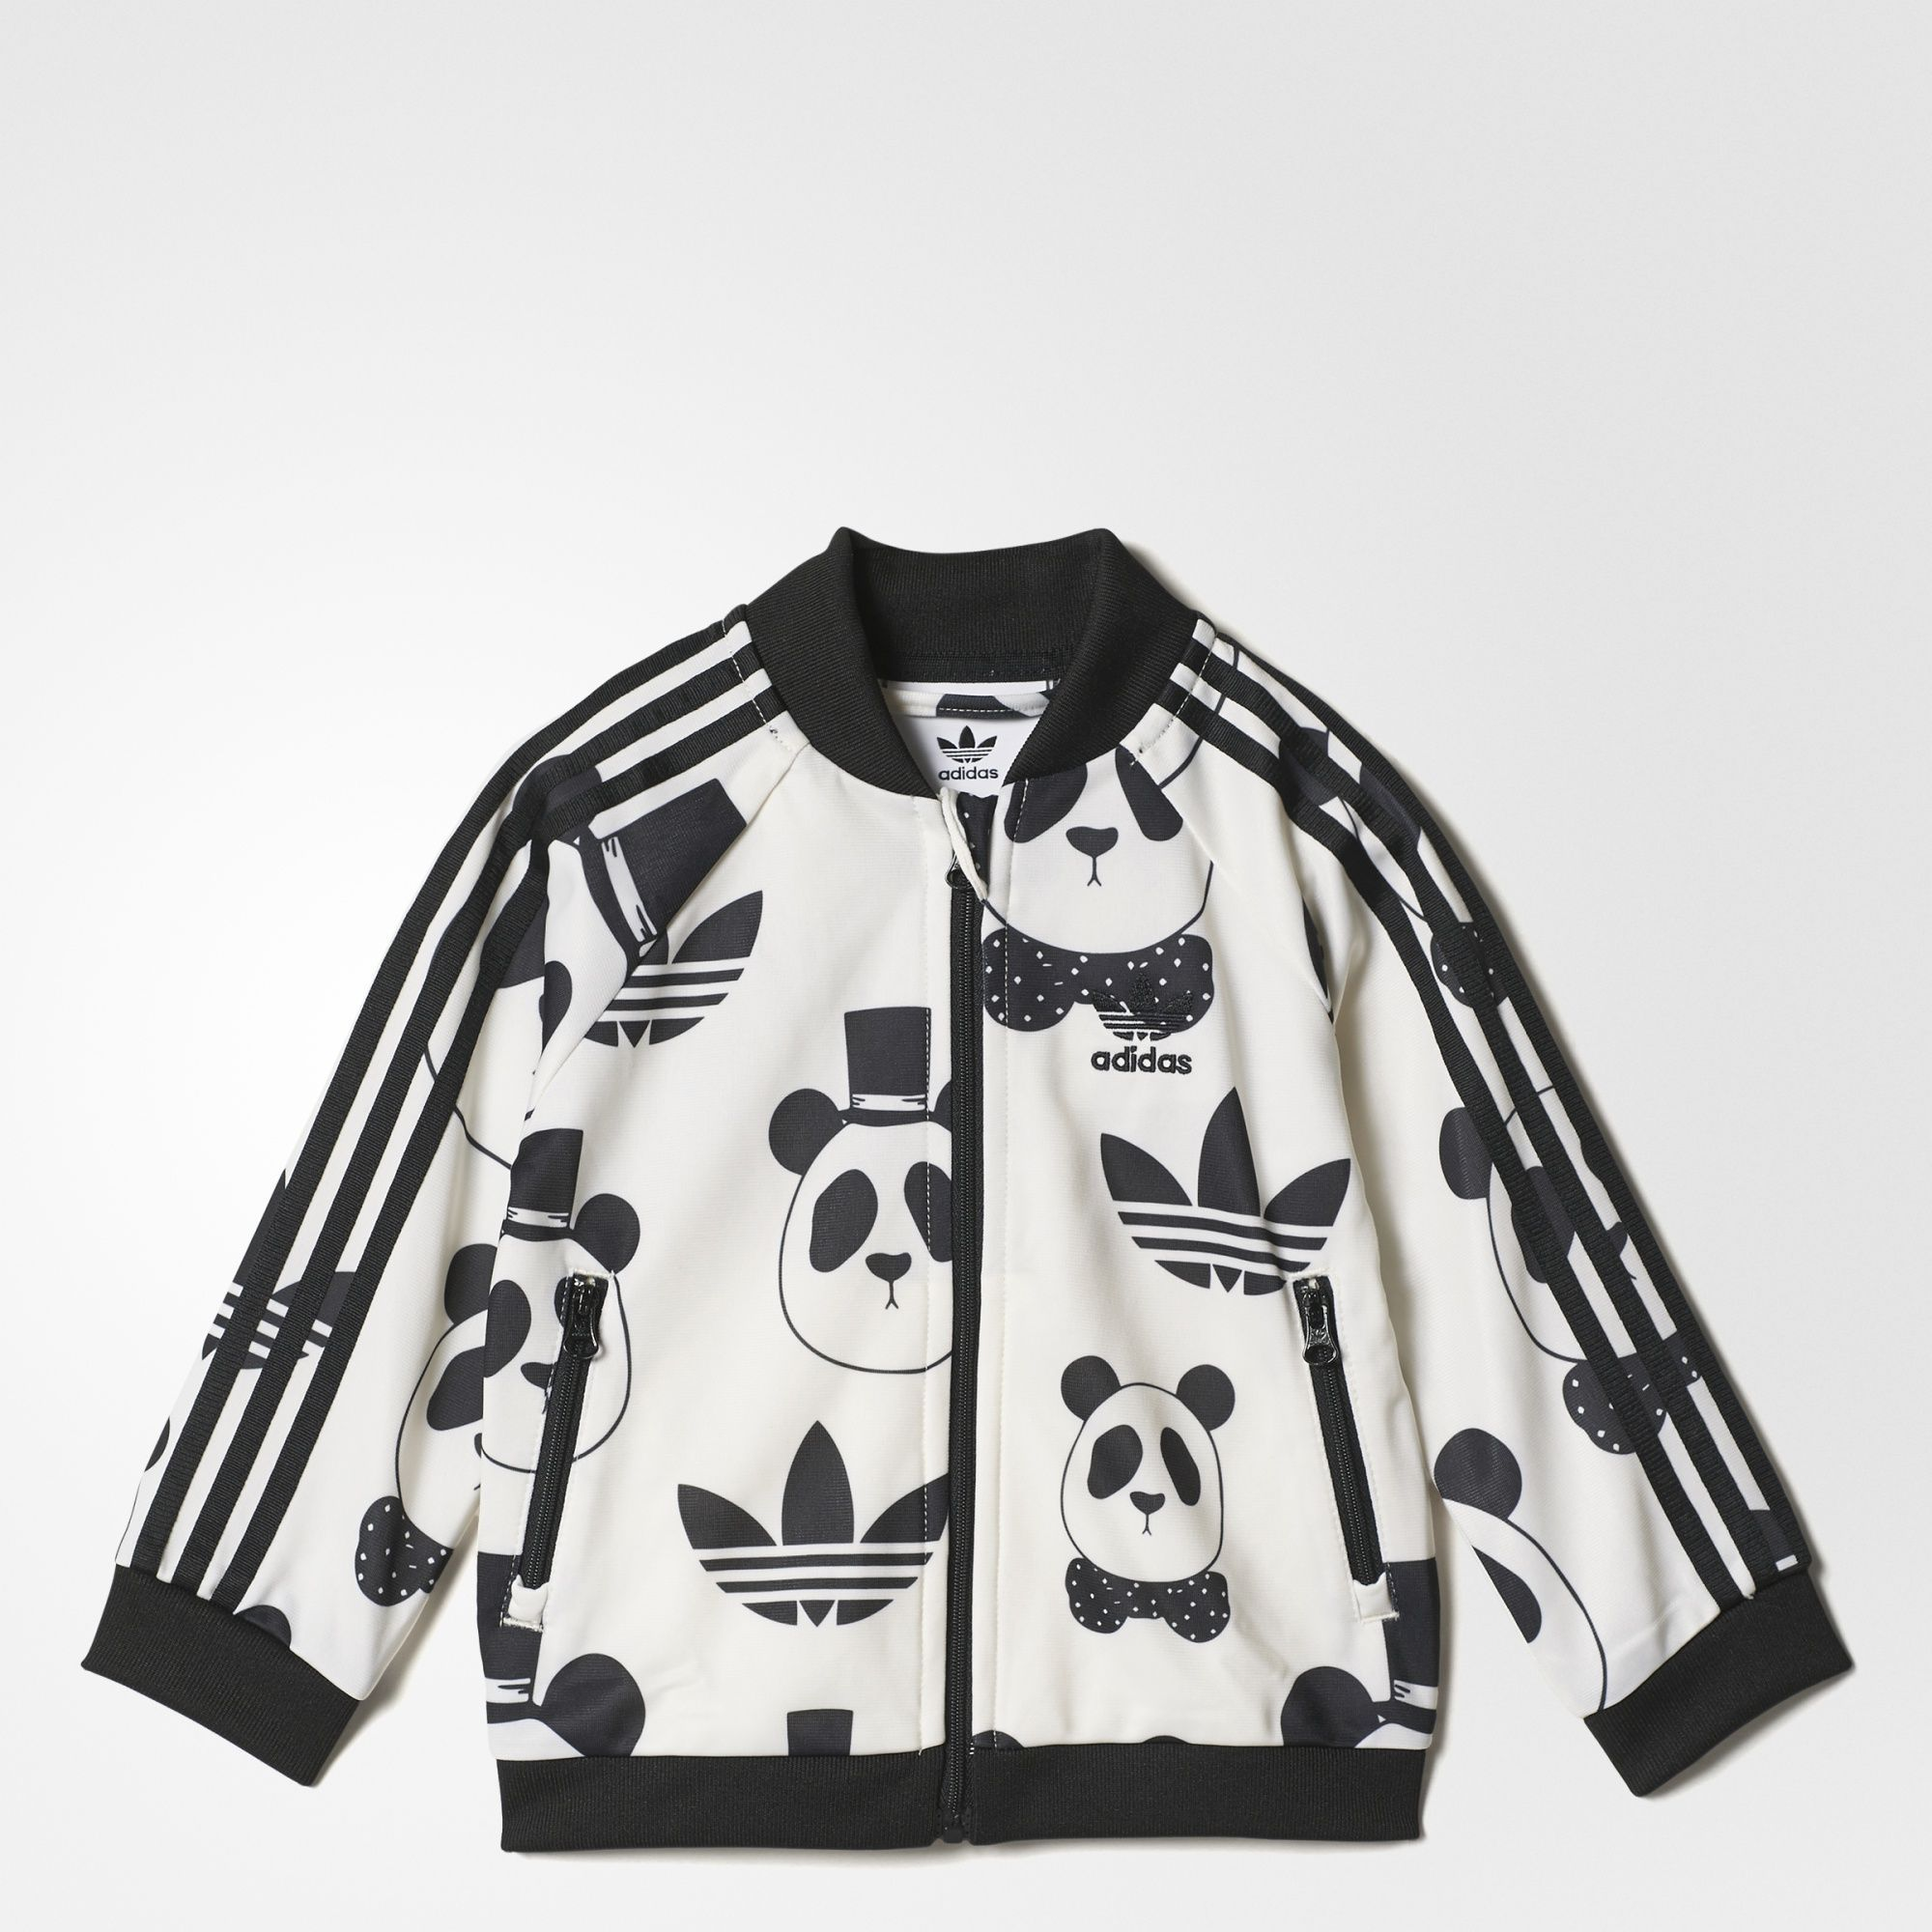 adidas - Mini Rodini SST Track Suit | The Young | Pinterest